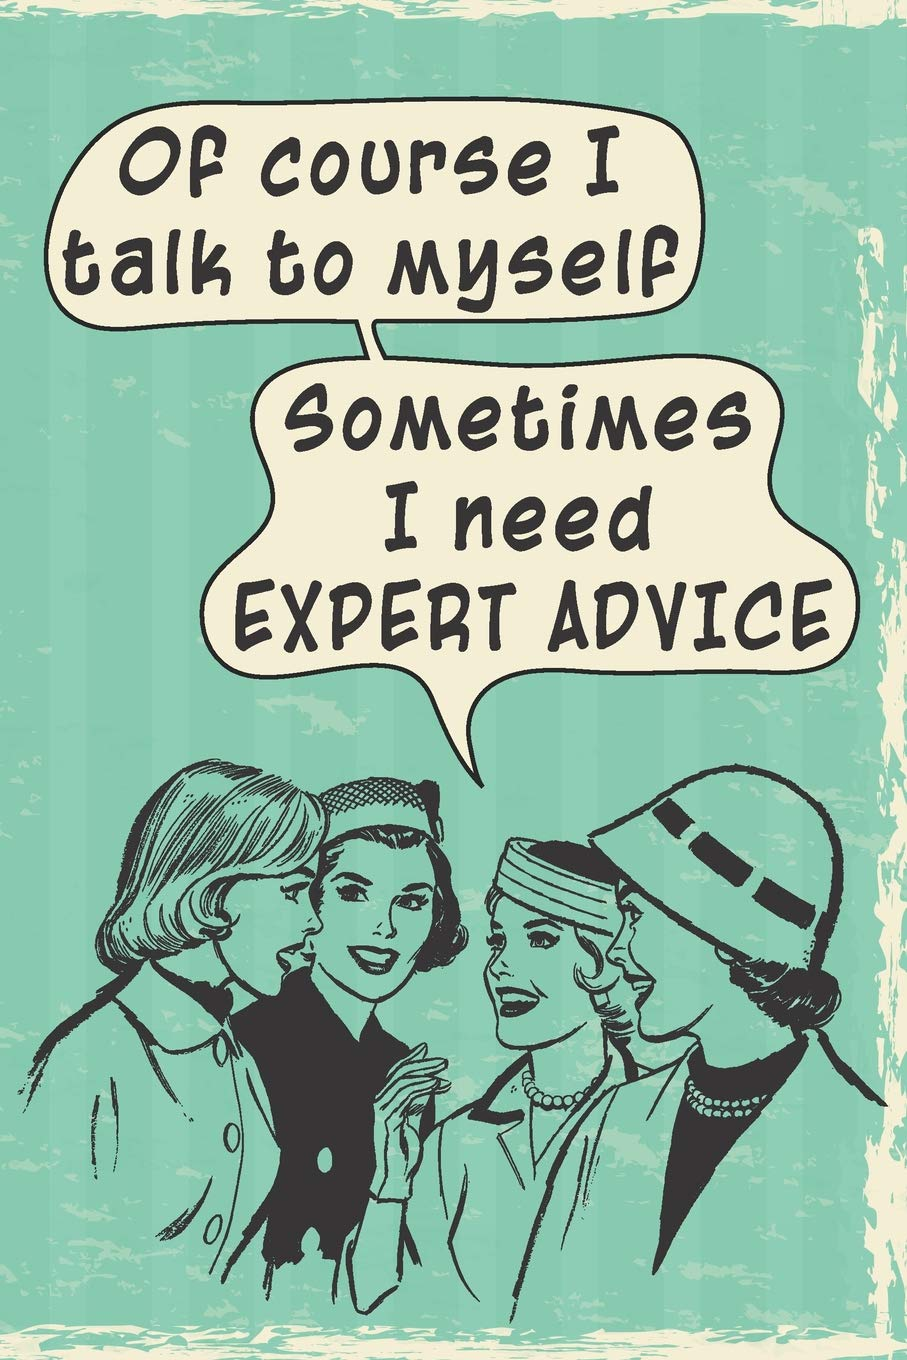 Sometimes I Need Expert Advice Notebook Of Course I Talk To Myself